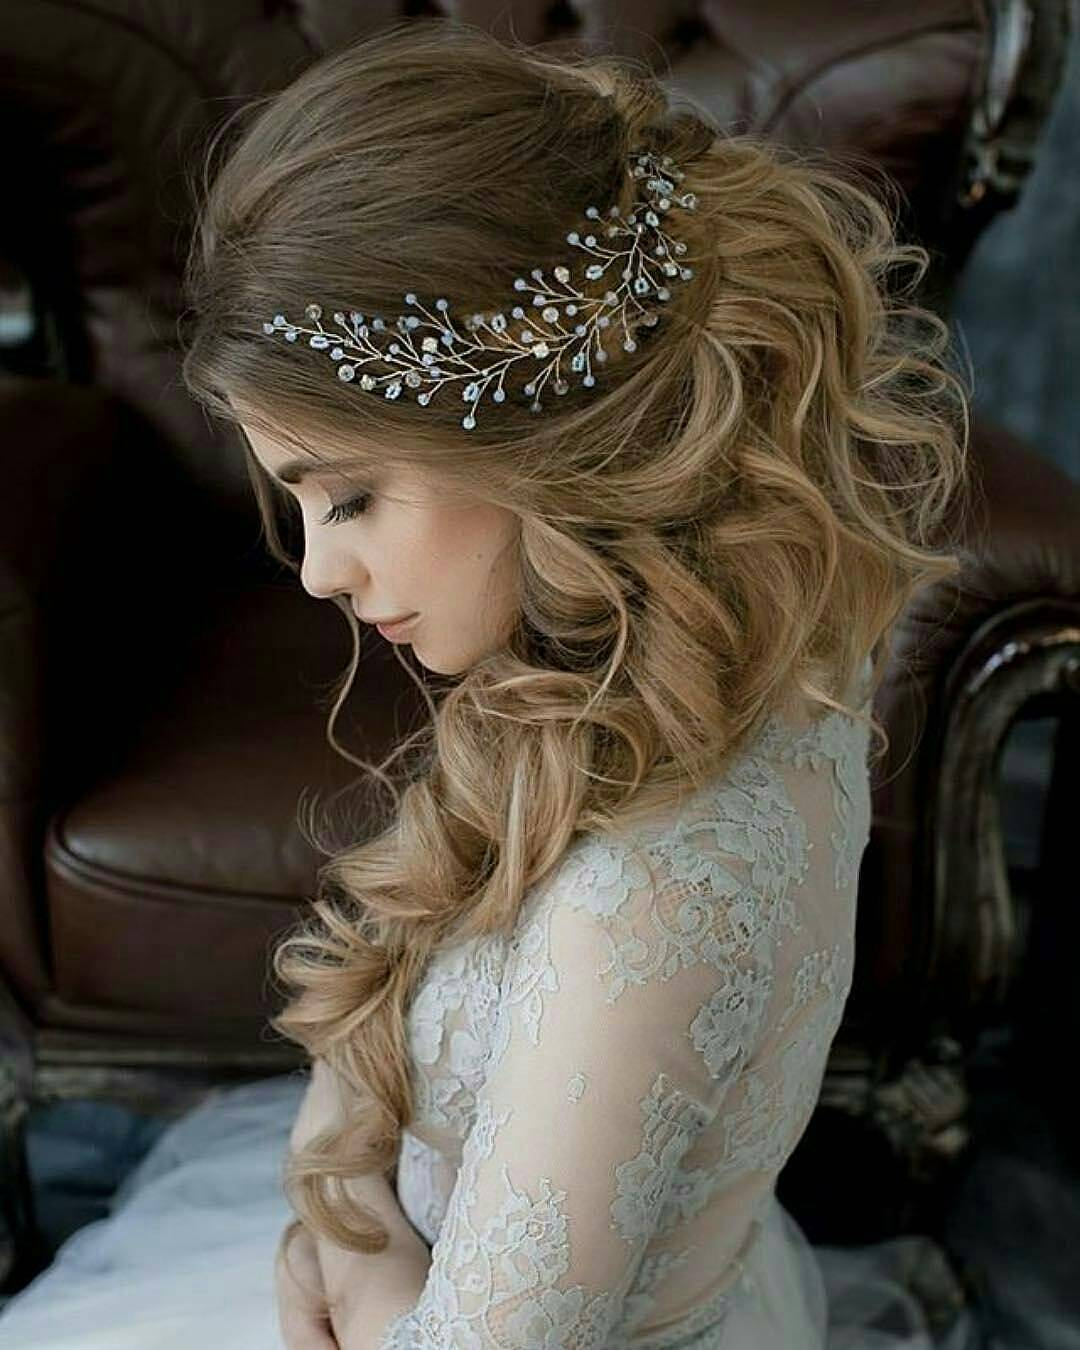 10 lavish wedding hairstyles for long hair wedding hairstyle ideas beautiful wedding hairstyles for long hair bride hairstyle designs junglespirit Images